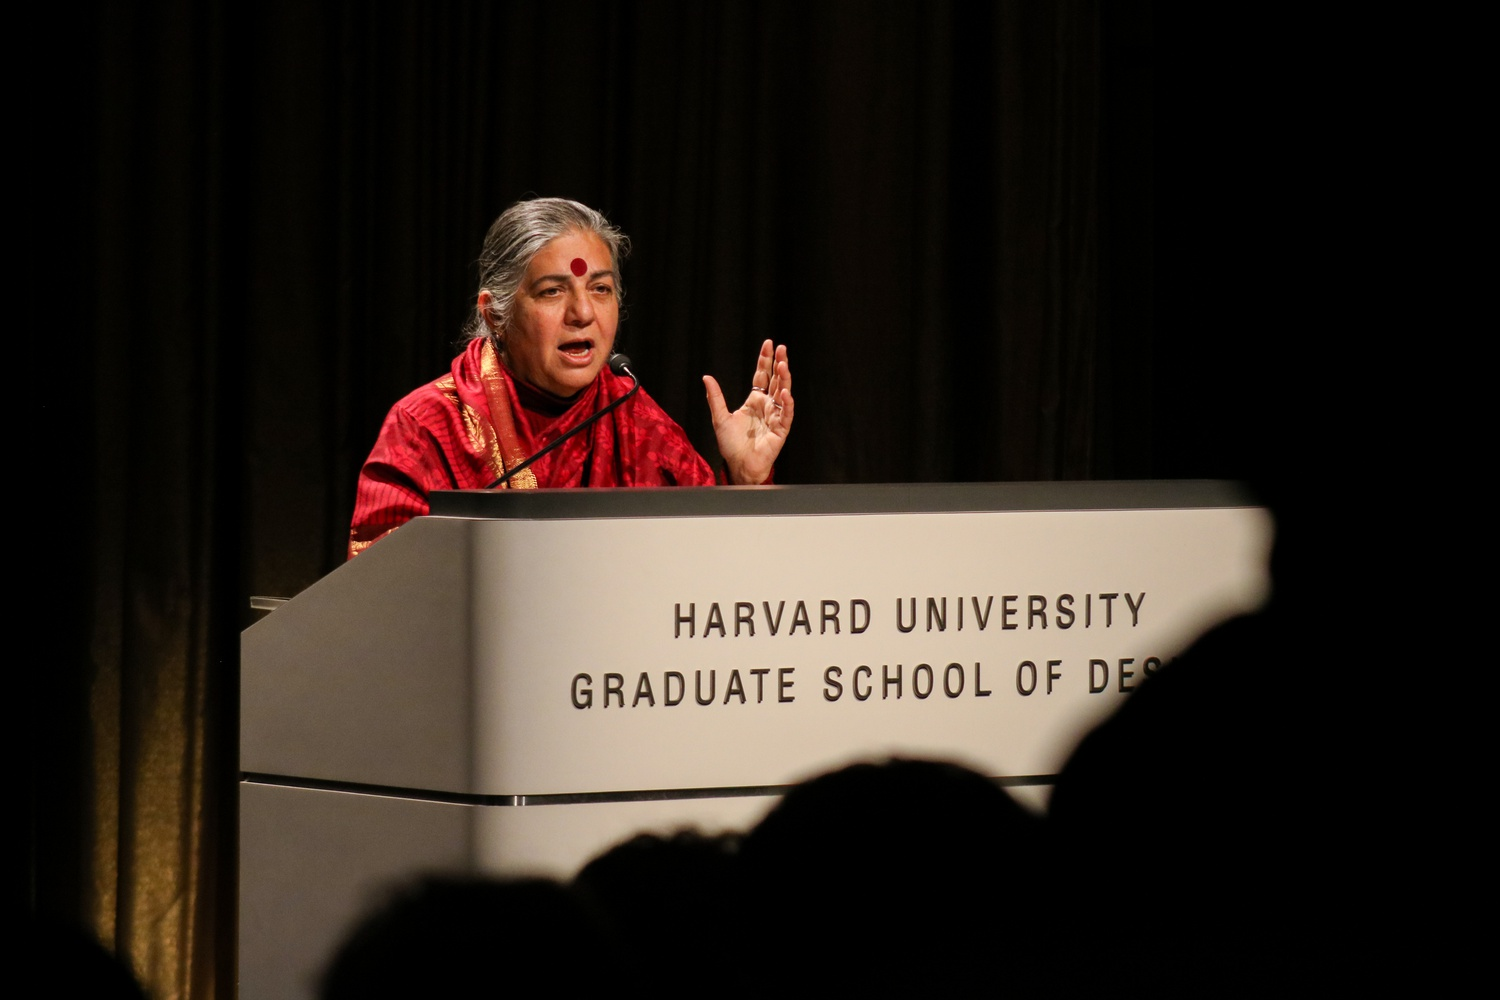 Dr. Vandana Shiva, an Indian scholar and environmental activist, spoke at the 2020 International Womxn's Day Lecture at the Harvard University Graduate School of Design.